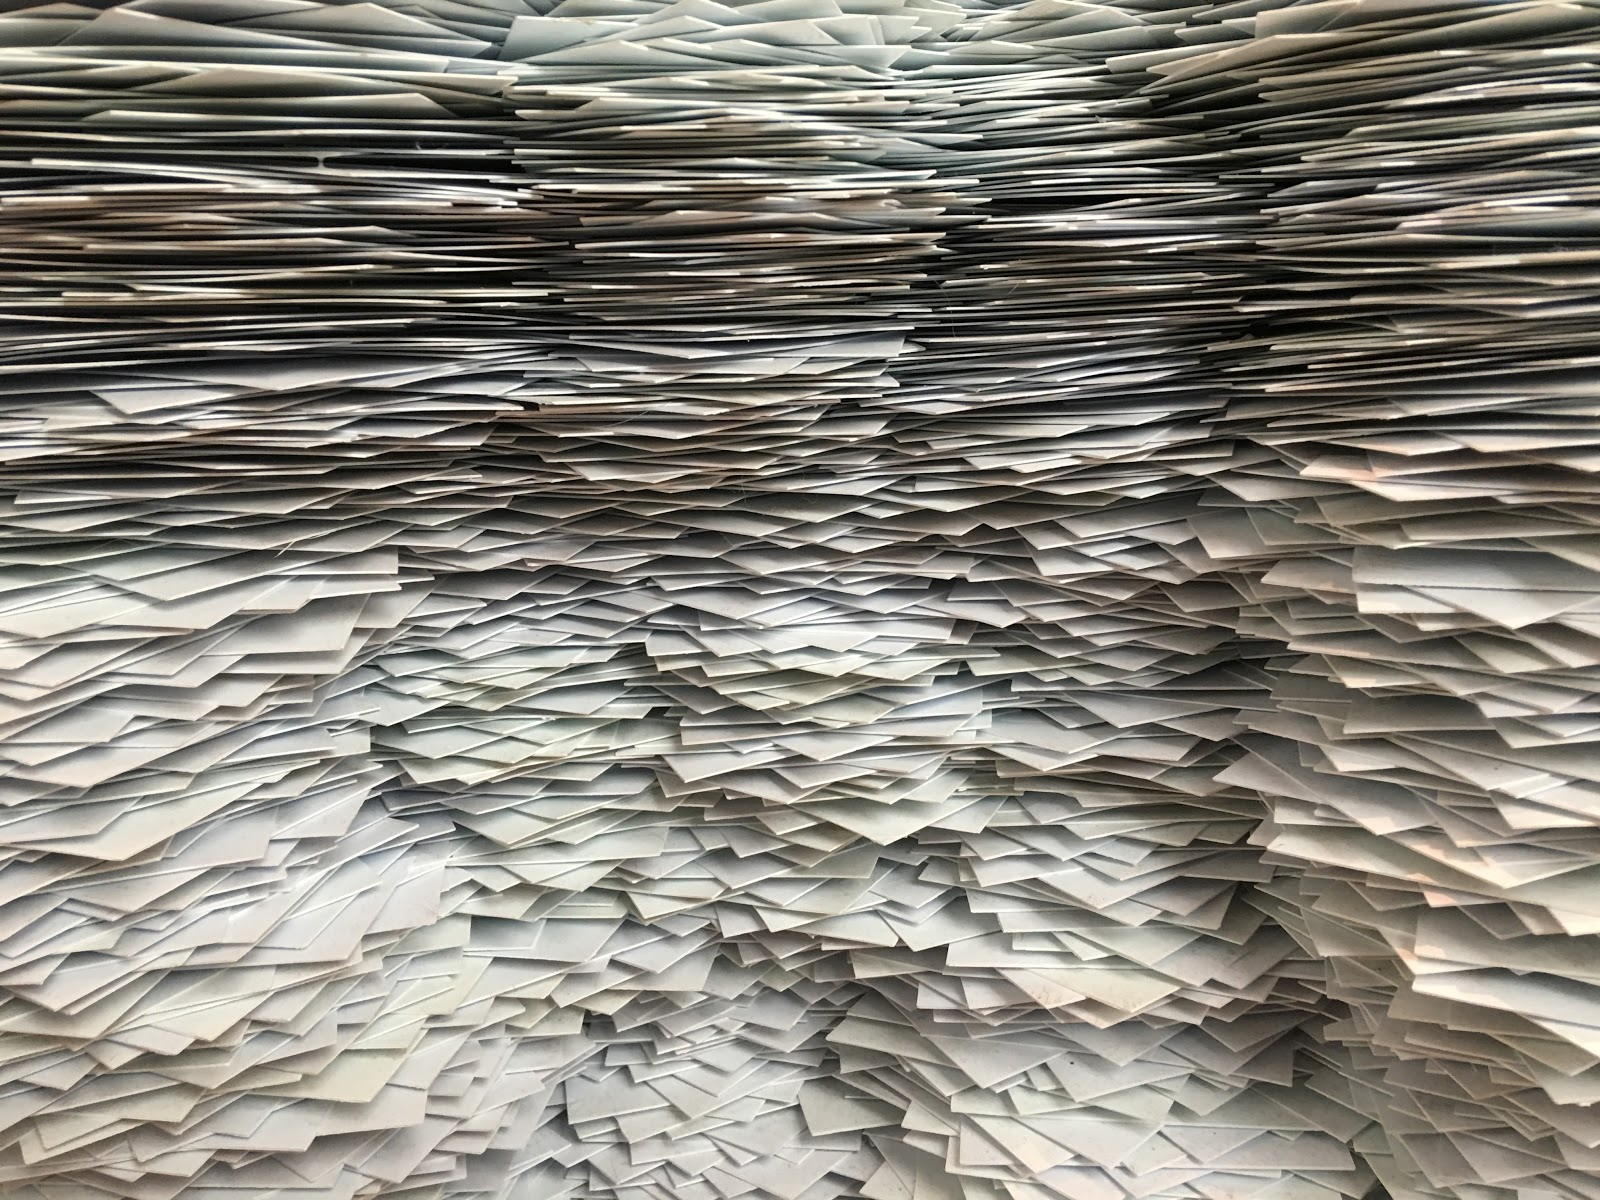 A clutter of paperwork filling a room